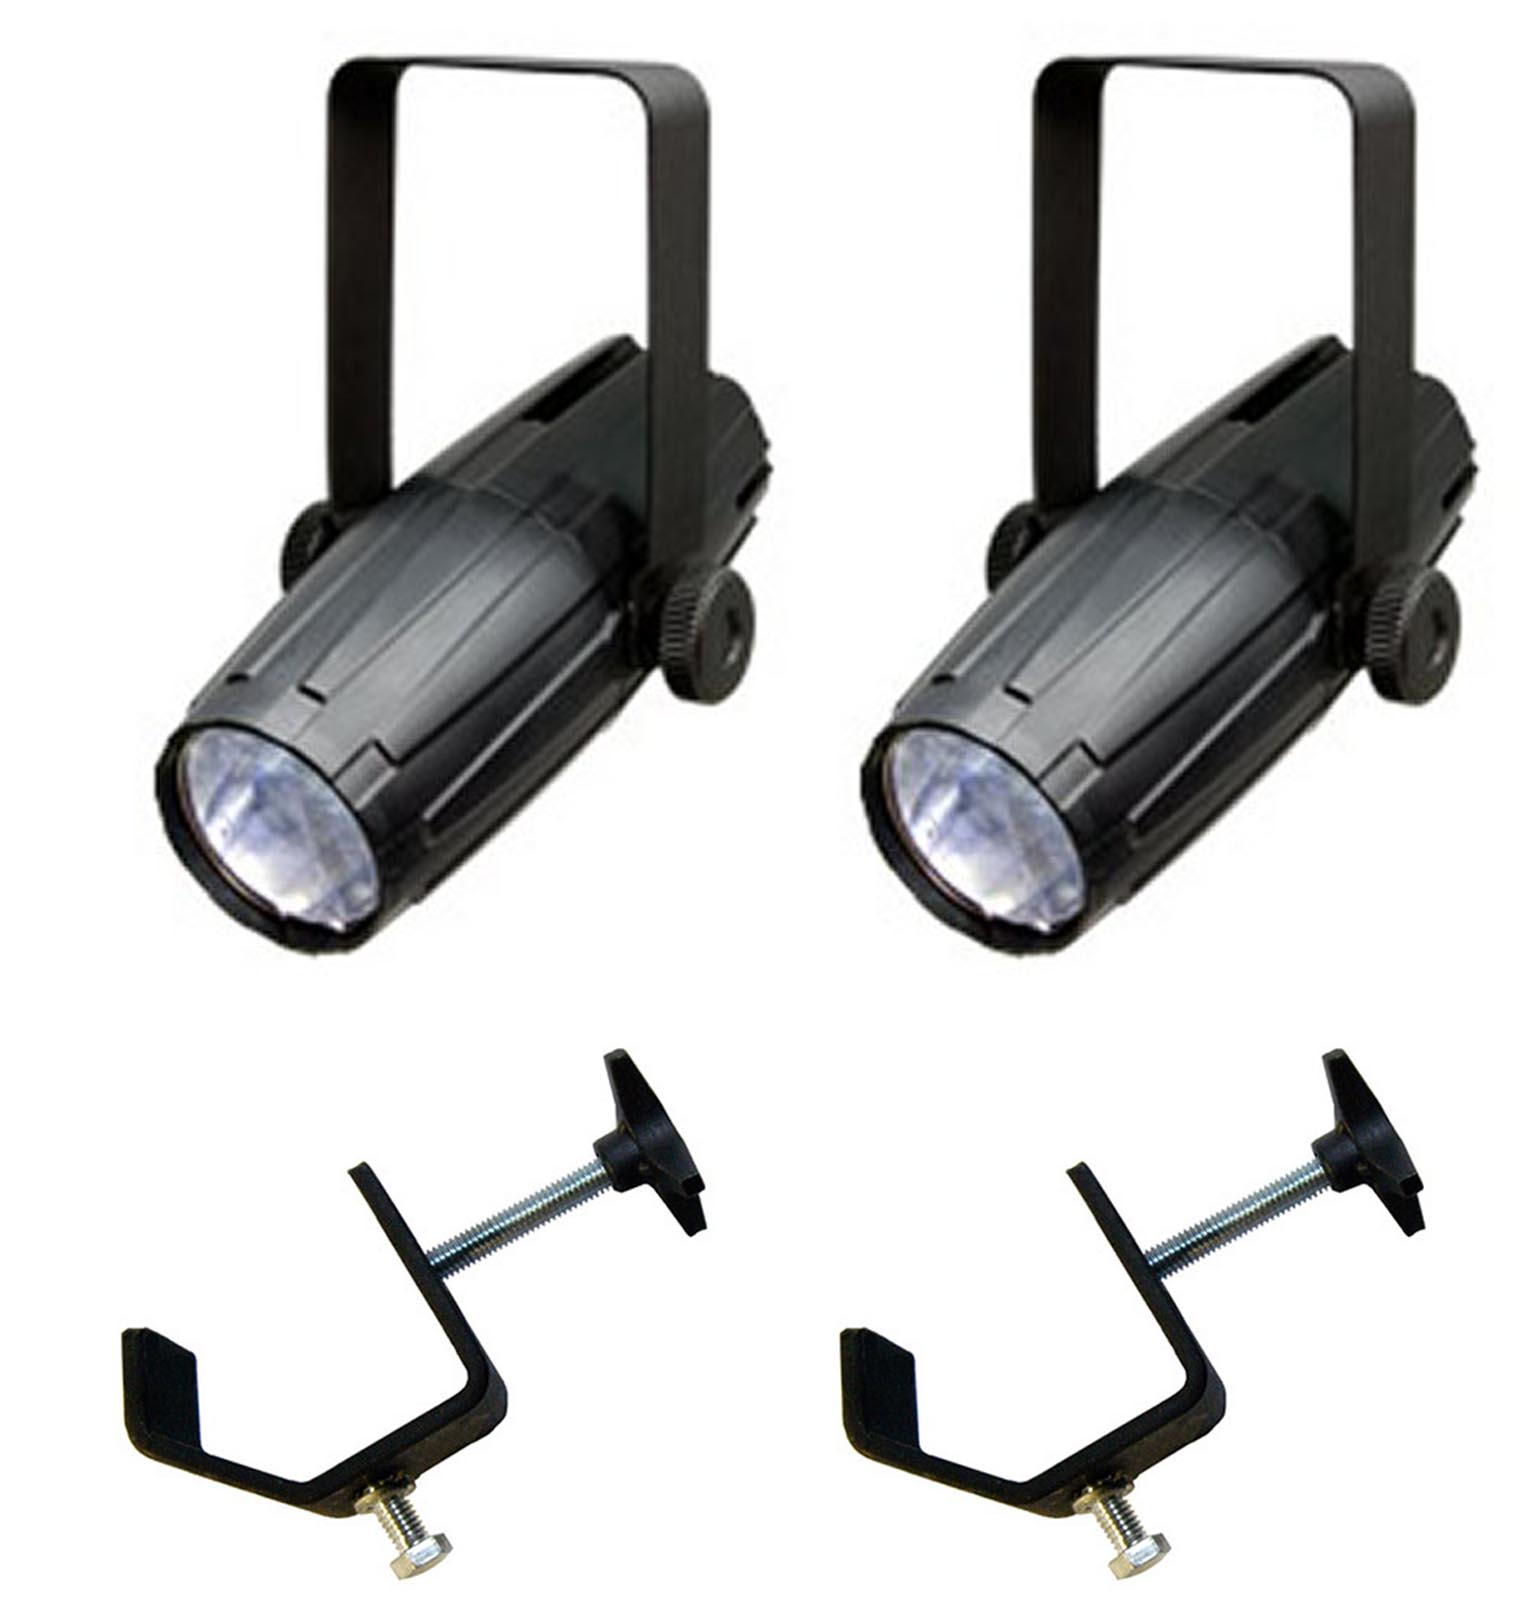 (2) CHAUVET LED PINSPOT 2 High-Powered 3W DJ Mirror Ball Spotlights w  C-Clamps by Chauvet Dj